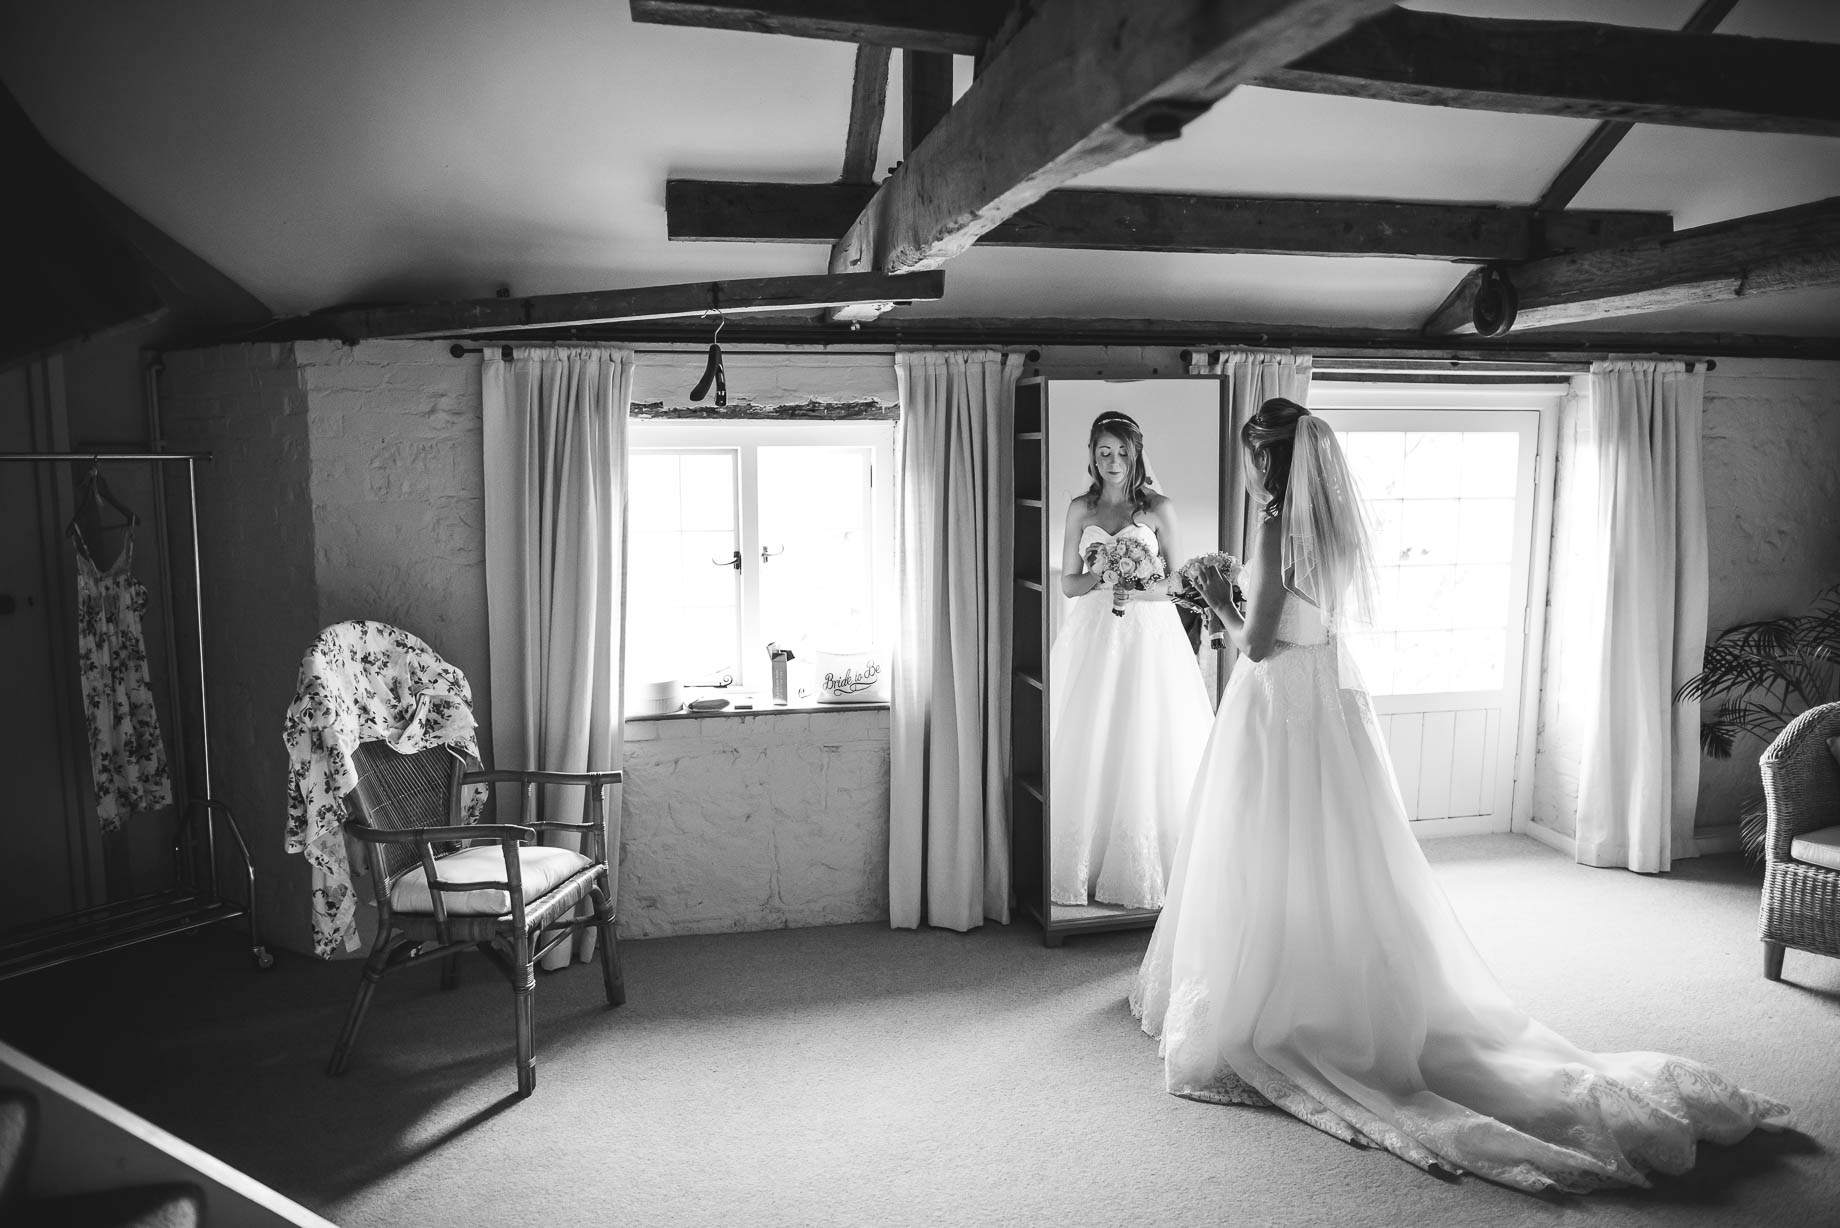 Bury Court Barn wedding photography - Guy Collier - Kirsty and Lewis (41 of 150)